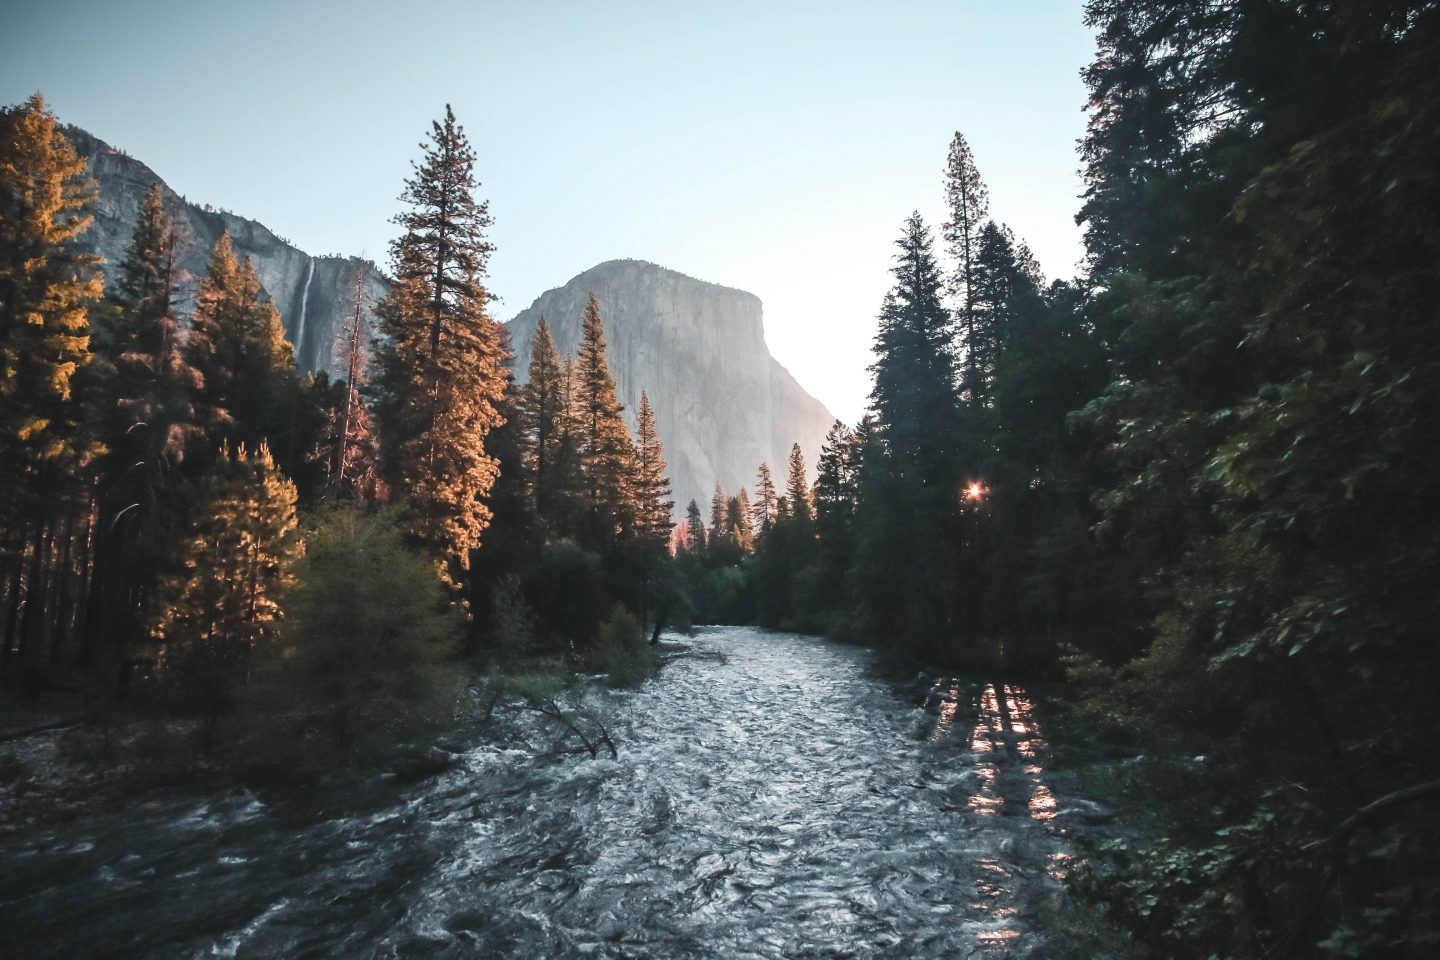 photo of a river surrounded by trees and mountains, protect our earth